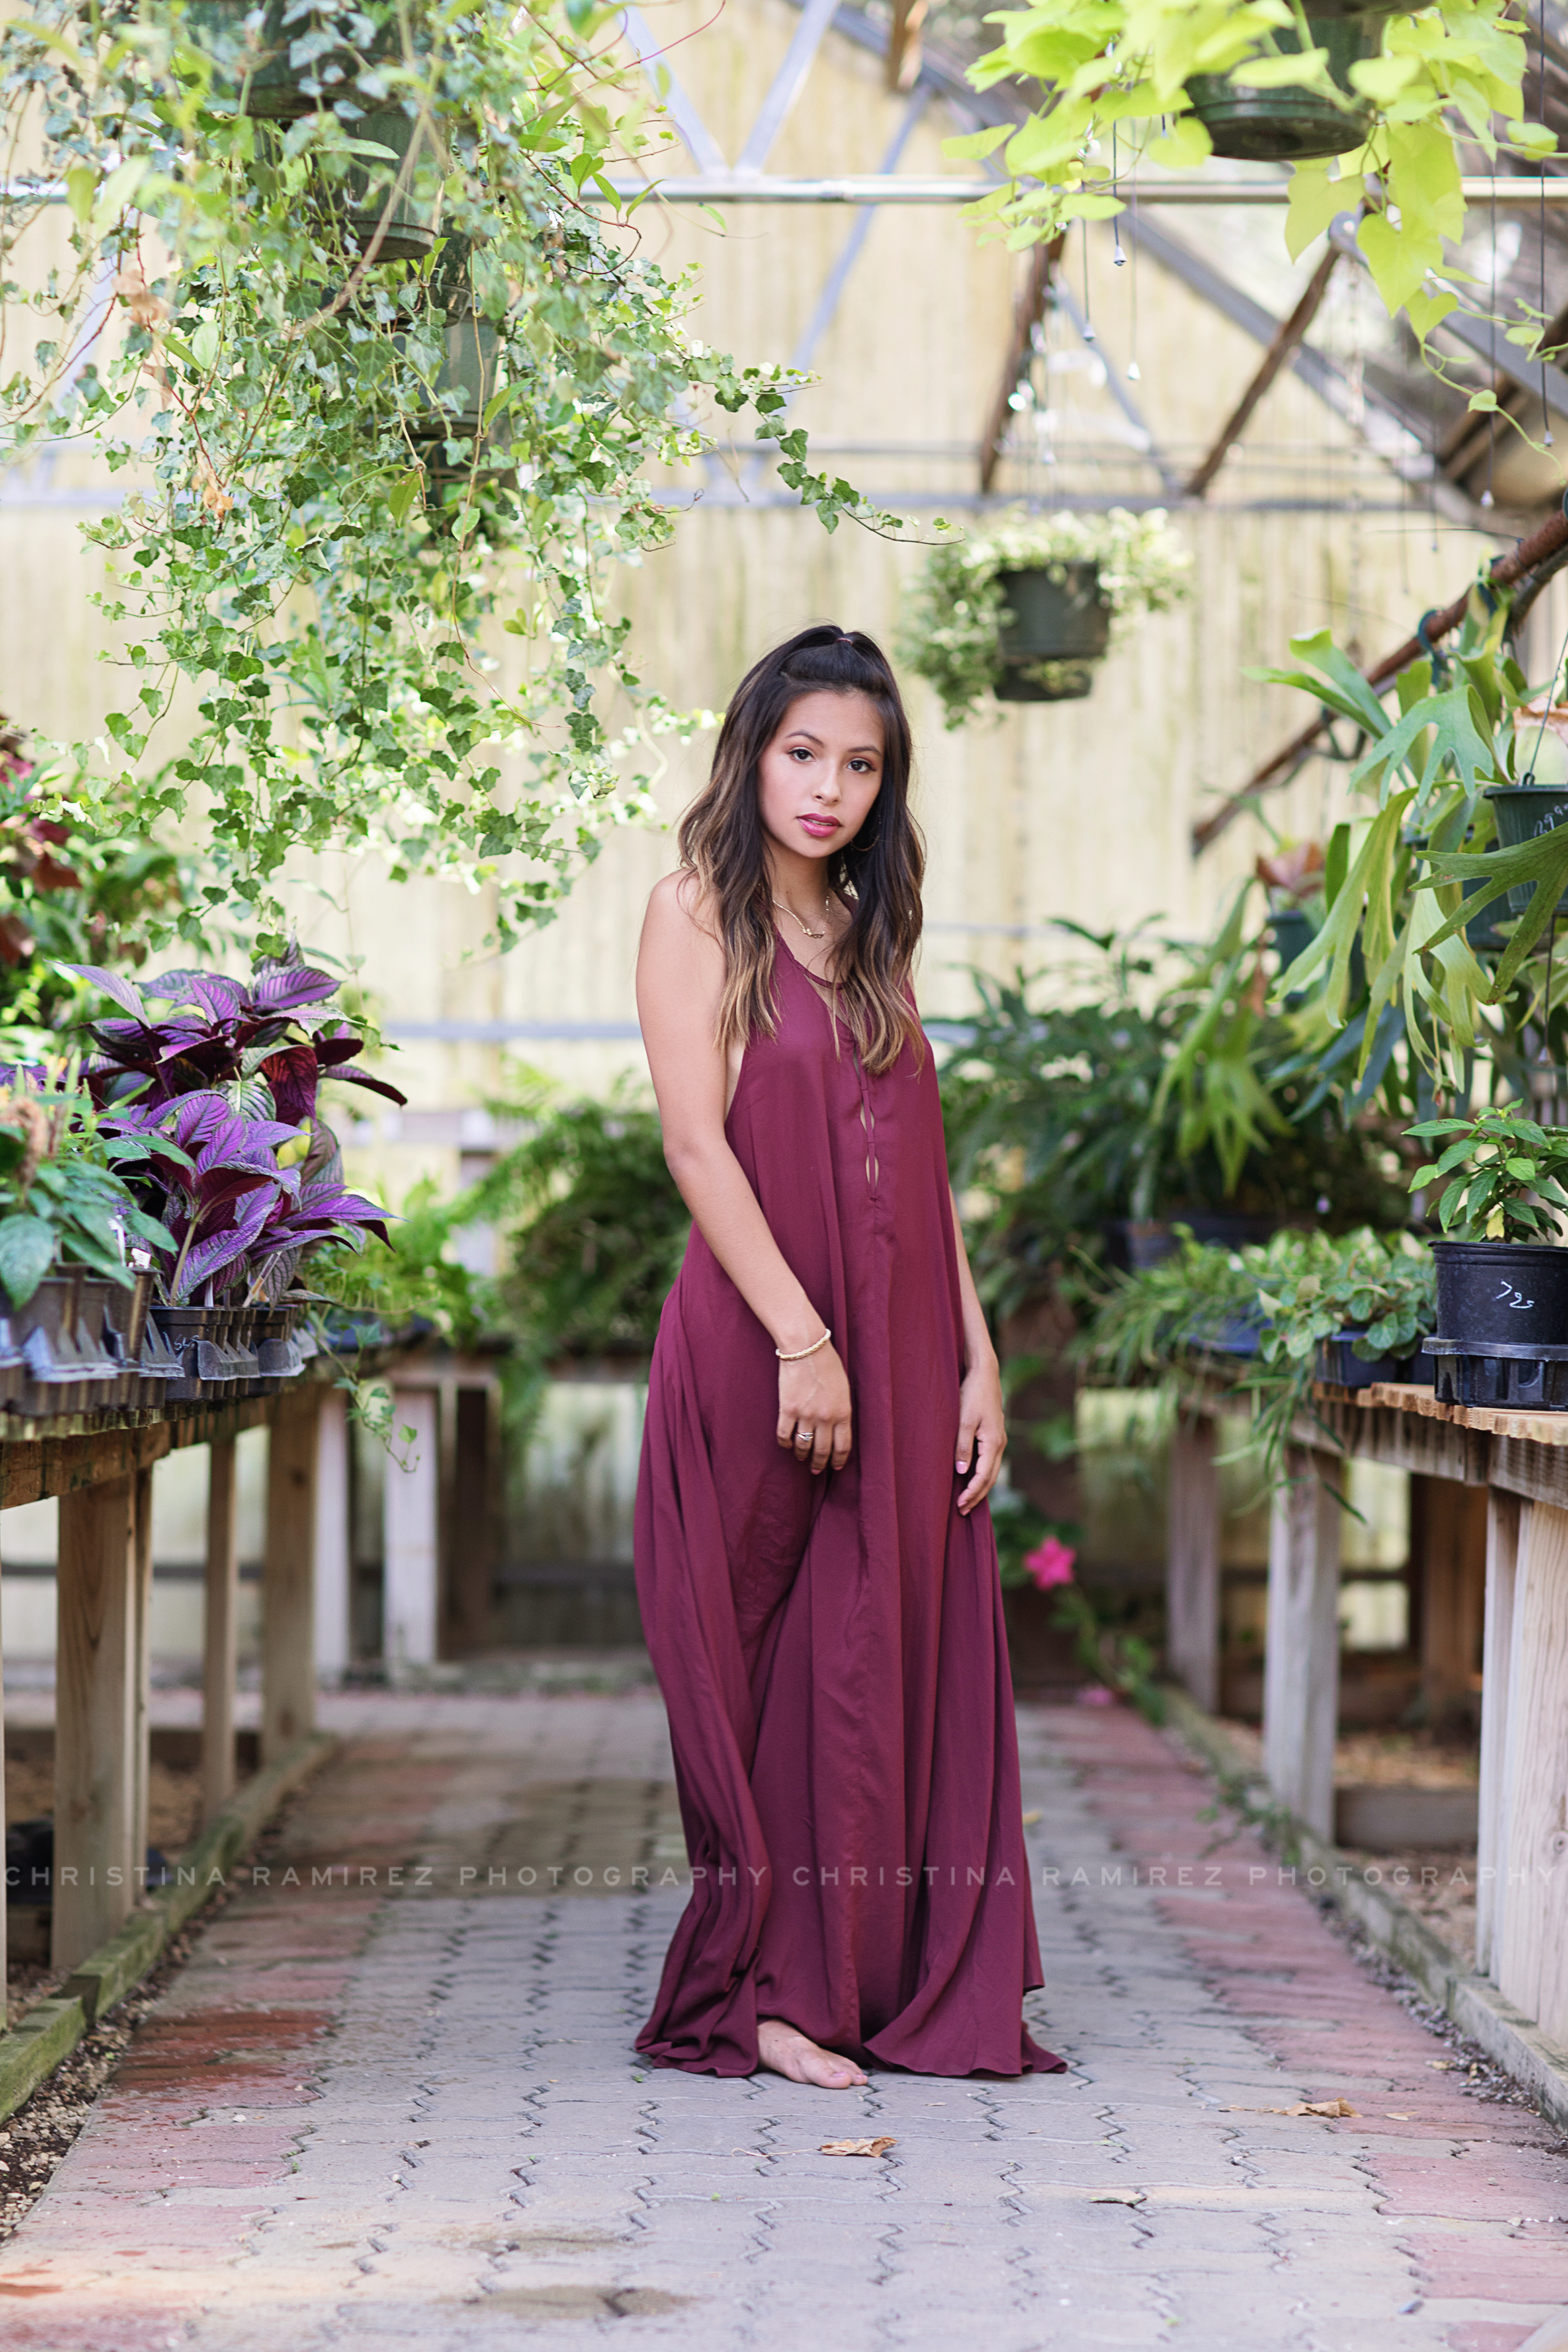 greenhouse senior portraits 38504